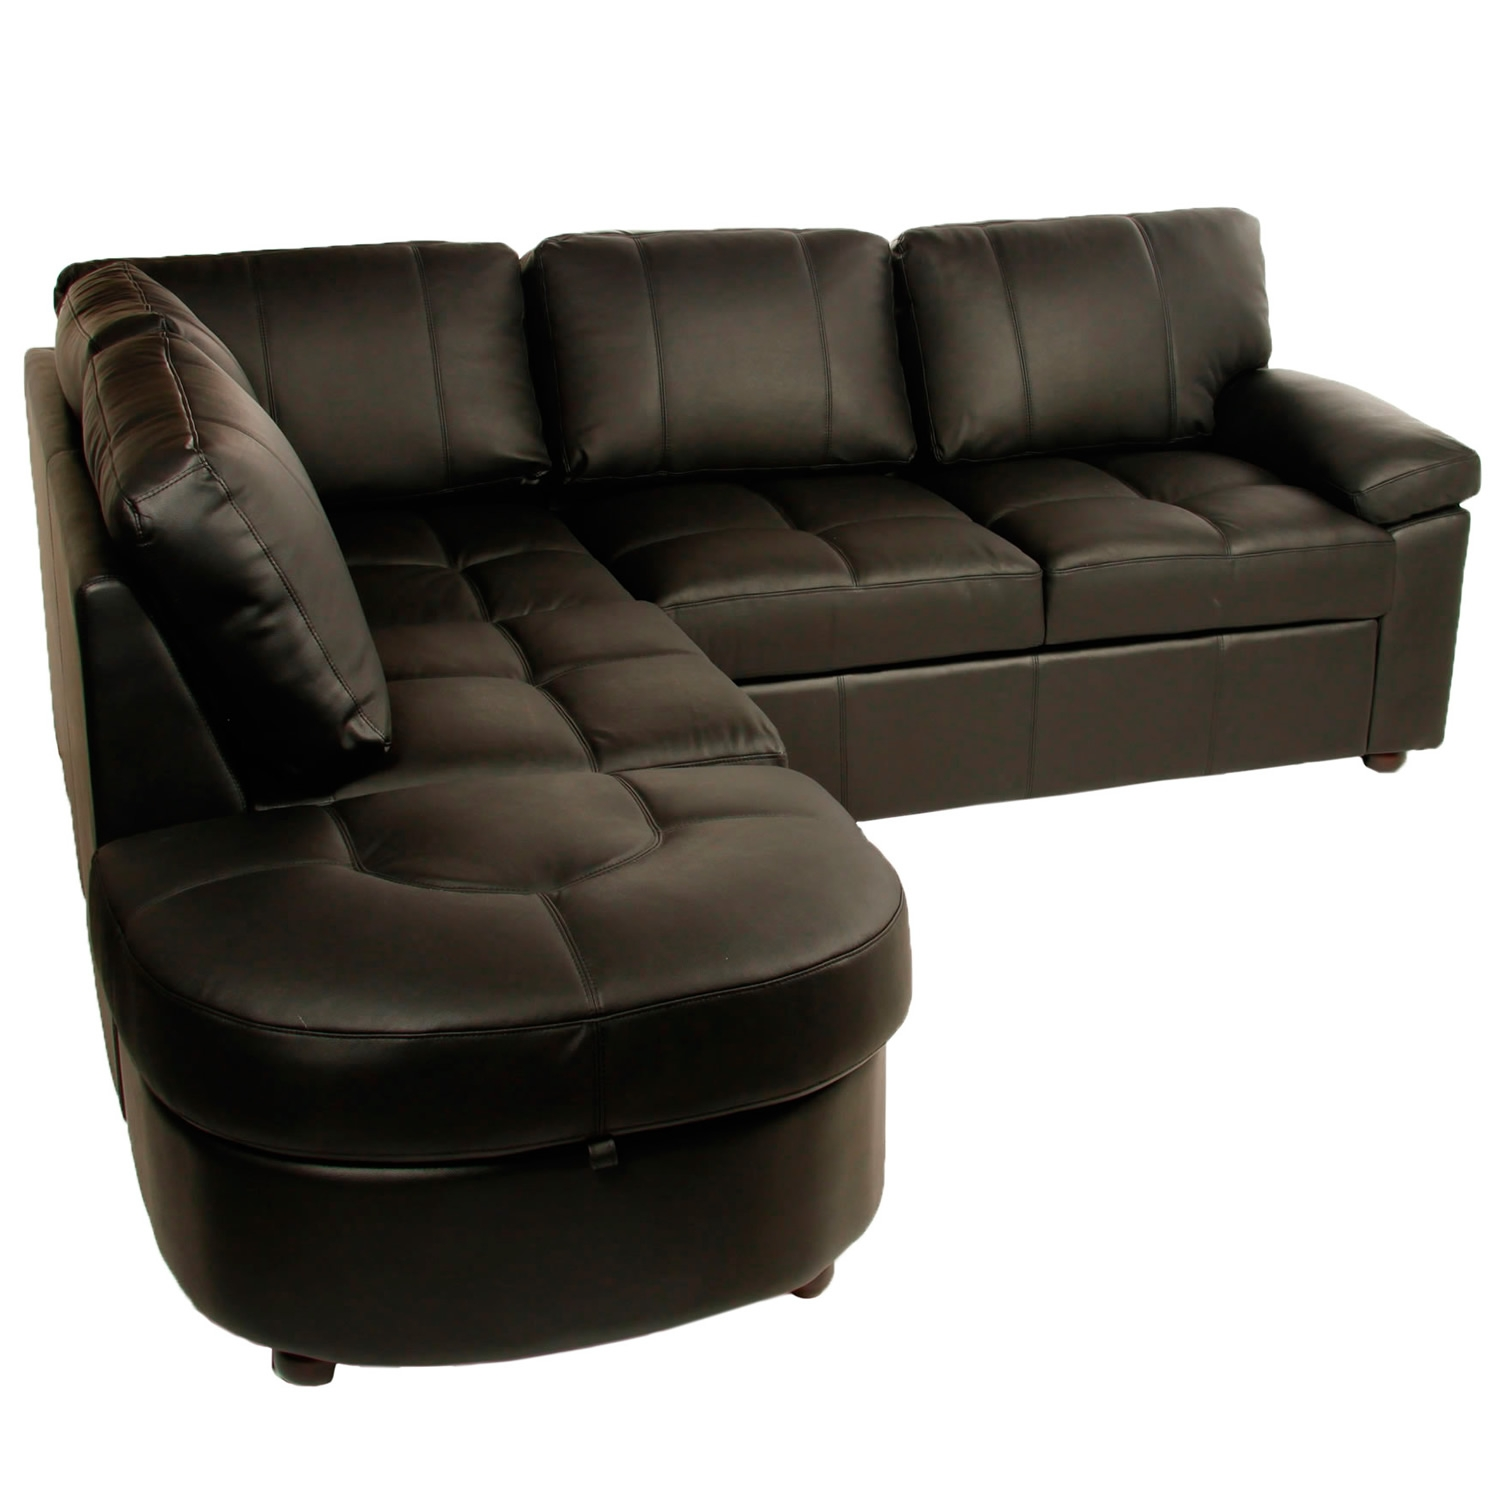 Small Corner Sofa Beds Uk Hereo Sofa Throughout Leather Corner Sofa Bed (Image 11 of 15)